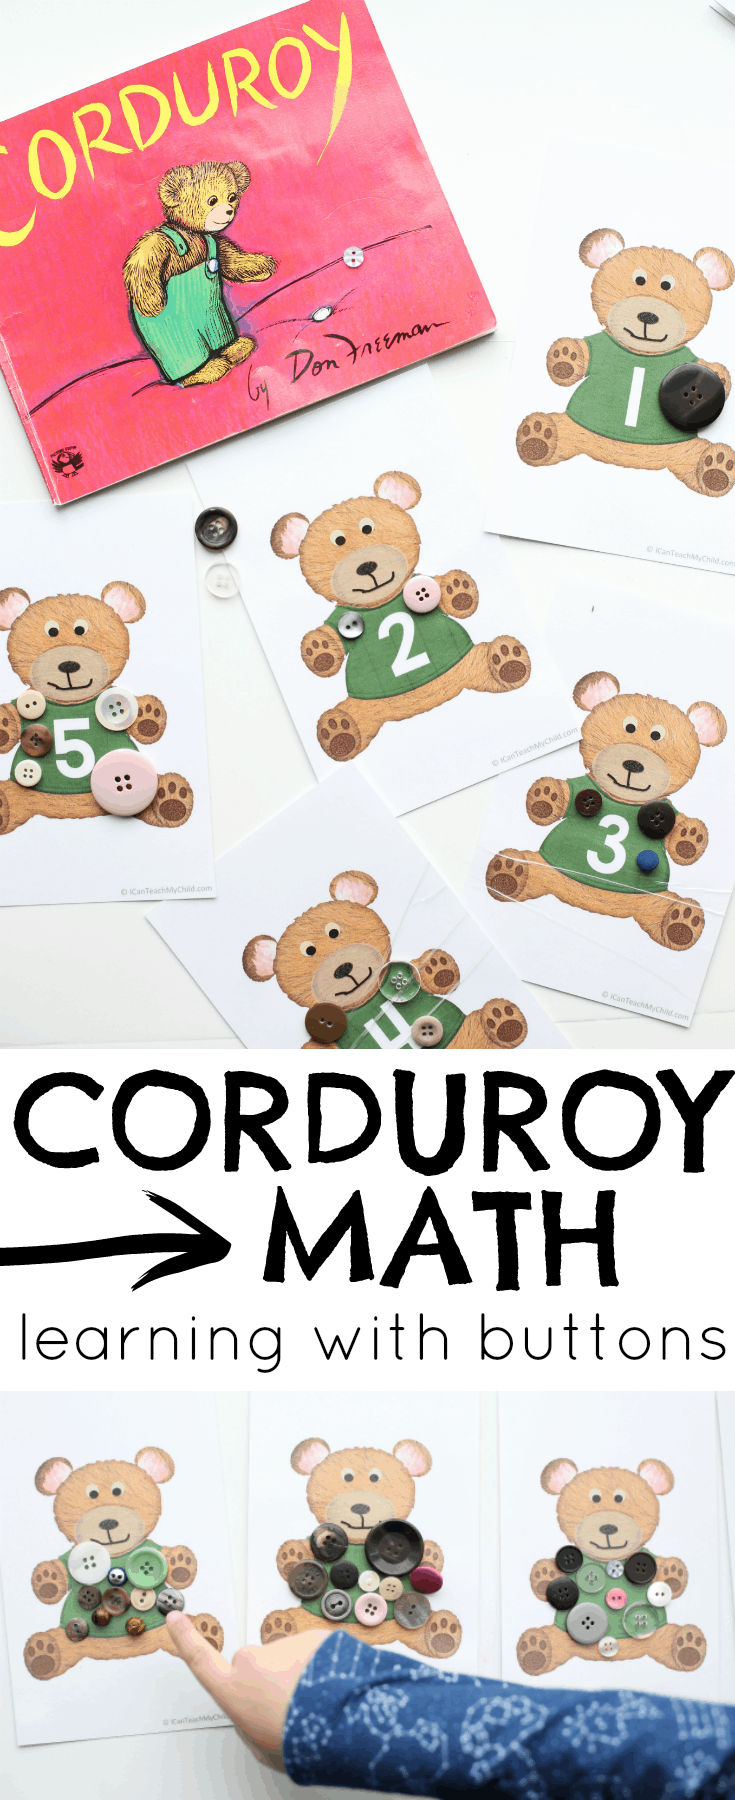 corduroy math learning with buttons